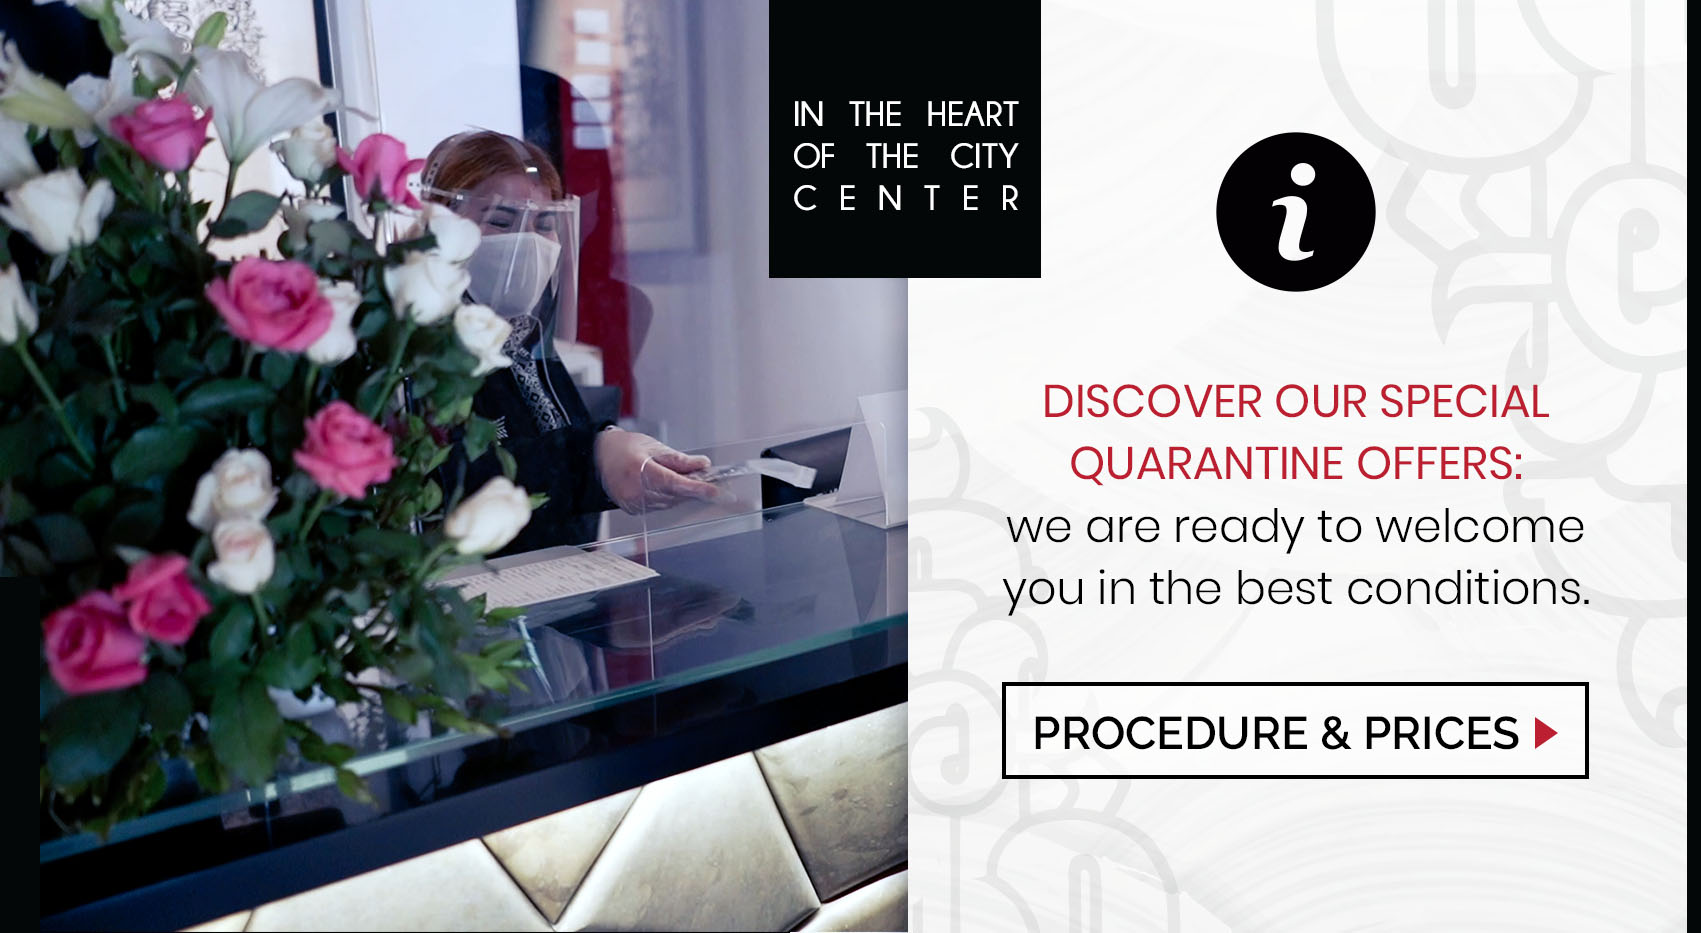 Discover our special quarantine offers